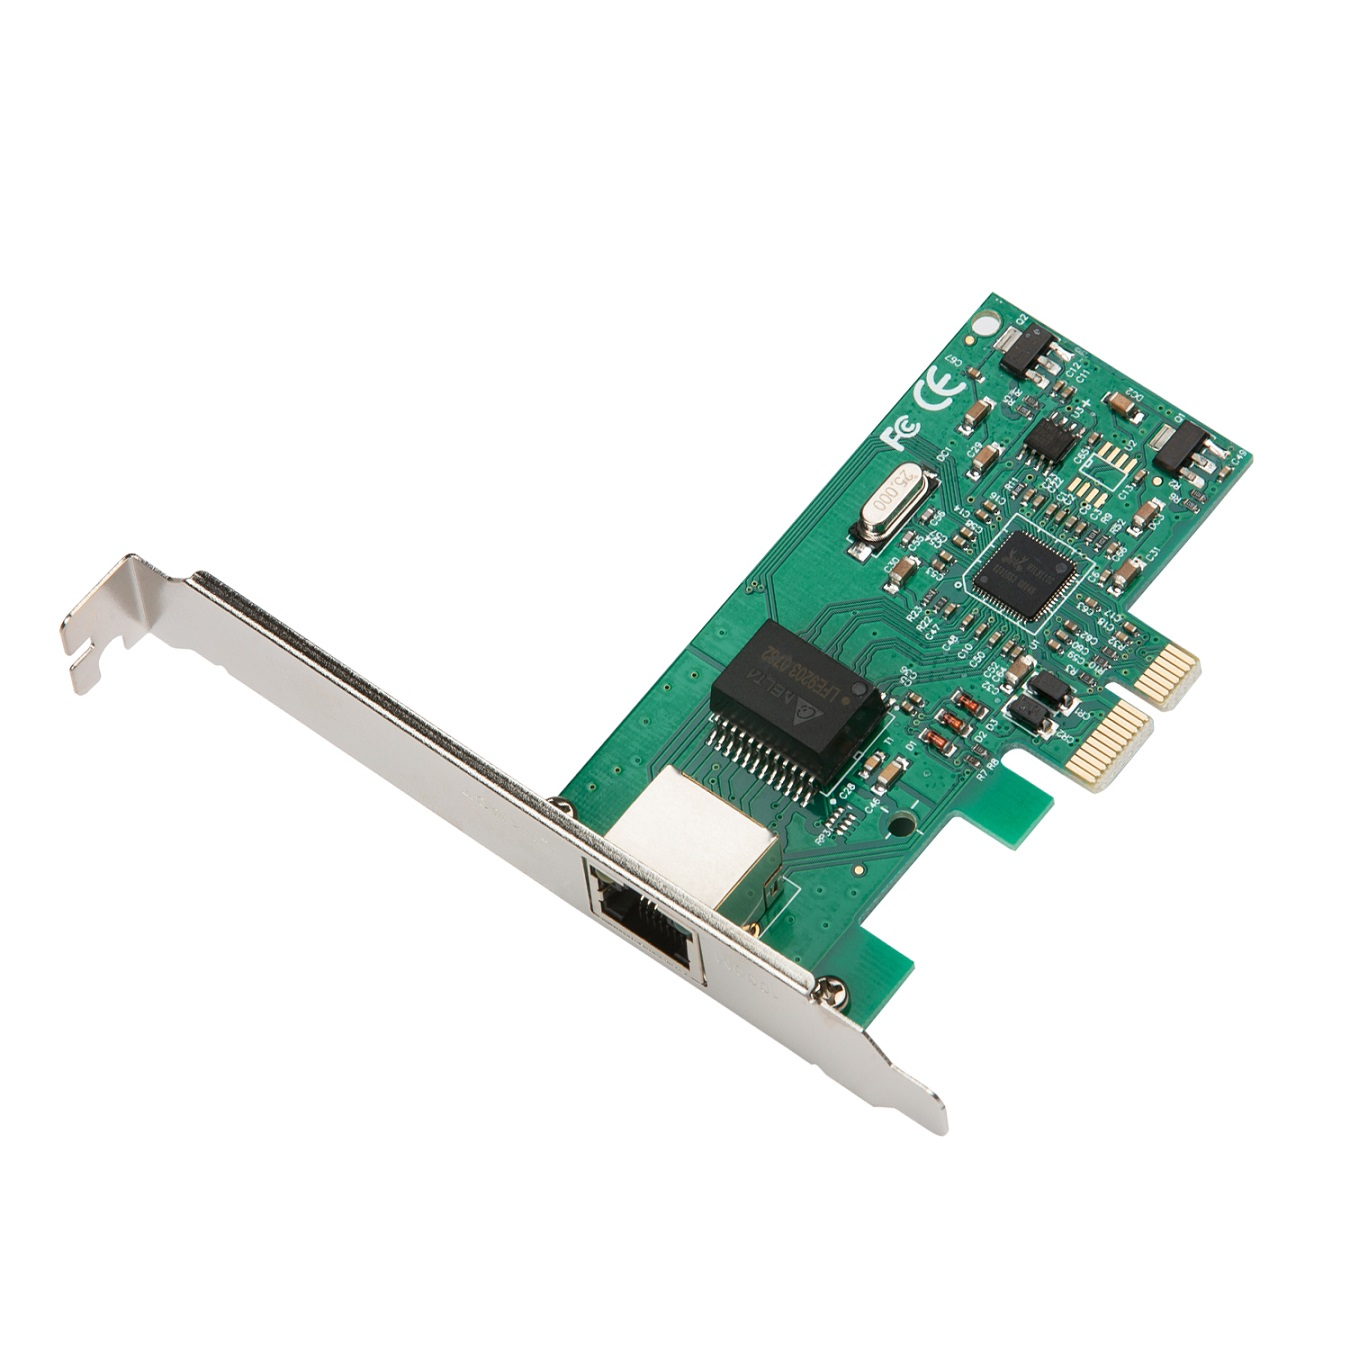 i-Tec PCIe Gigabit Ethernet Card 1000/100/10MBps, včetně Low Profile